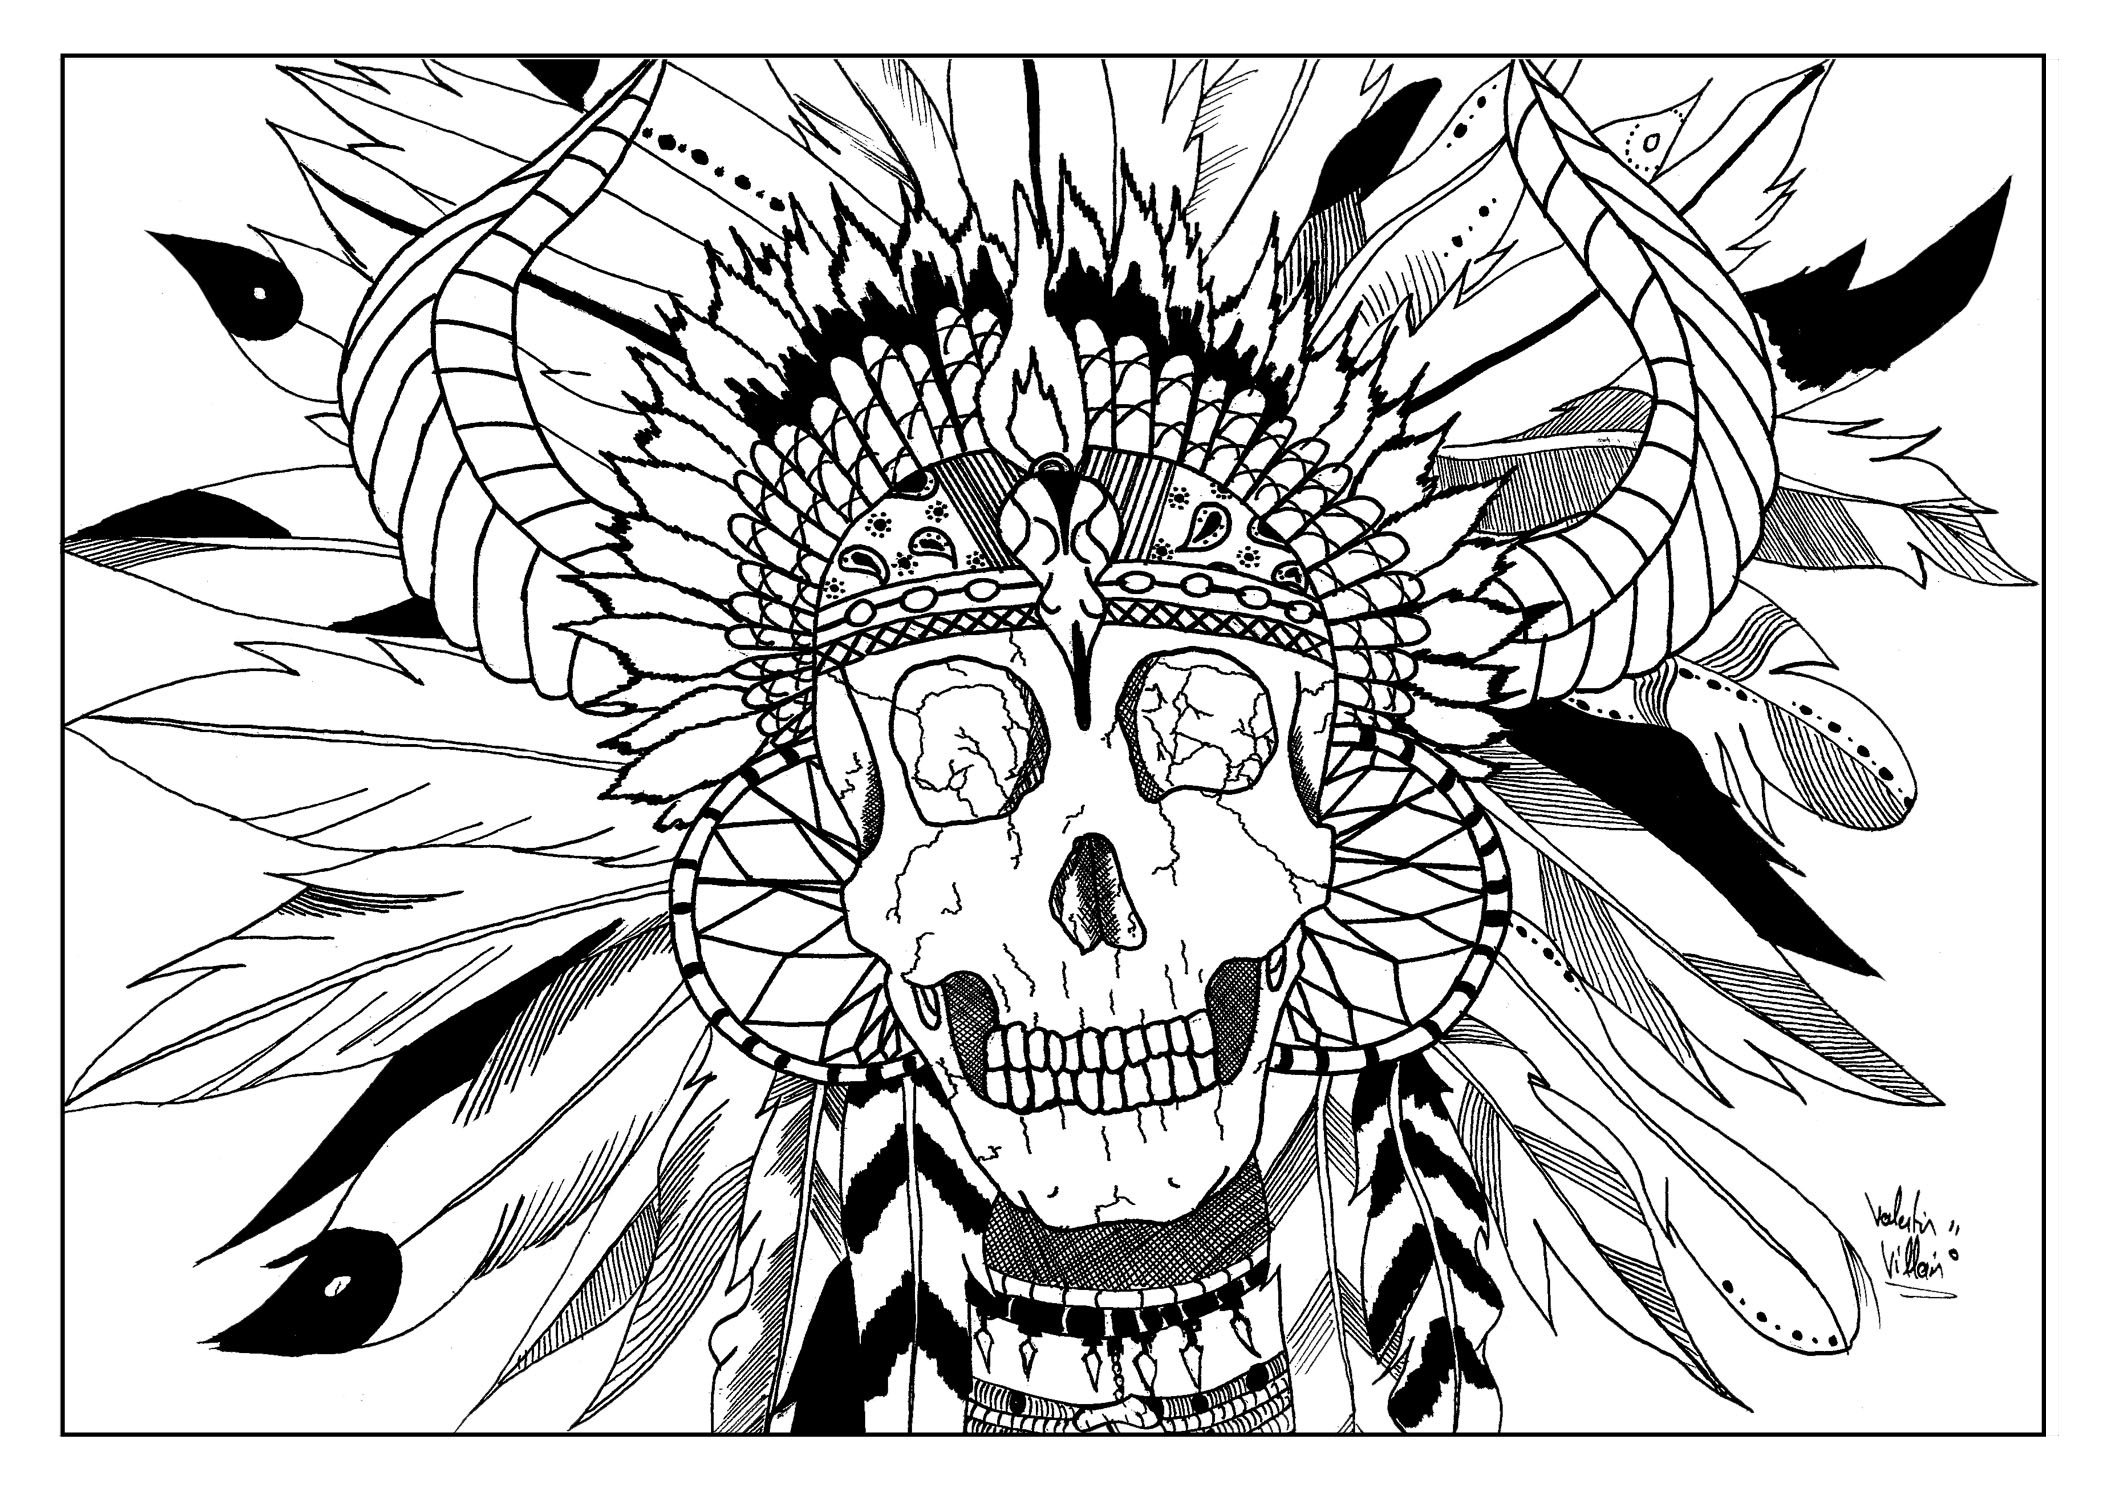 Coloring page of a native american skull with a headdress waiting to be colored